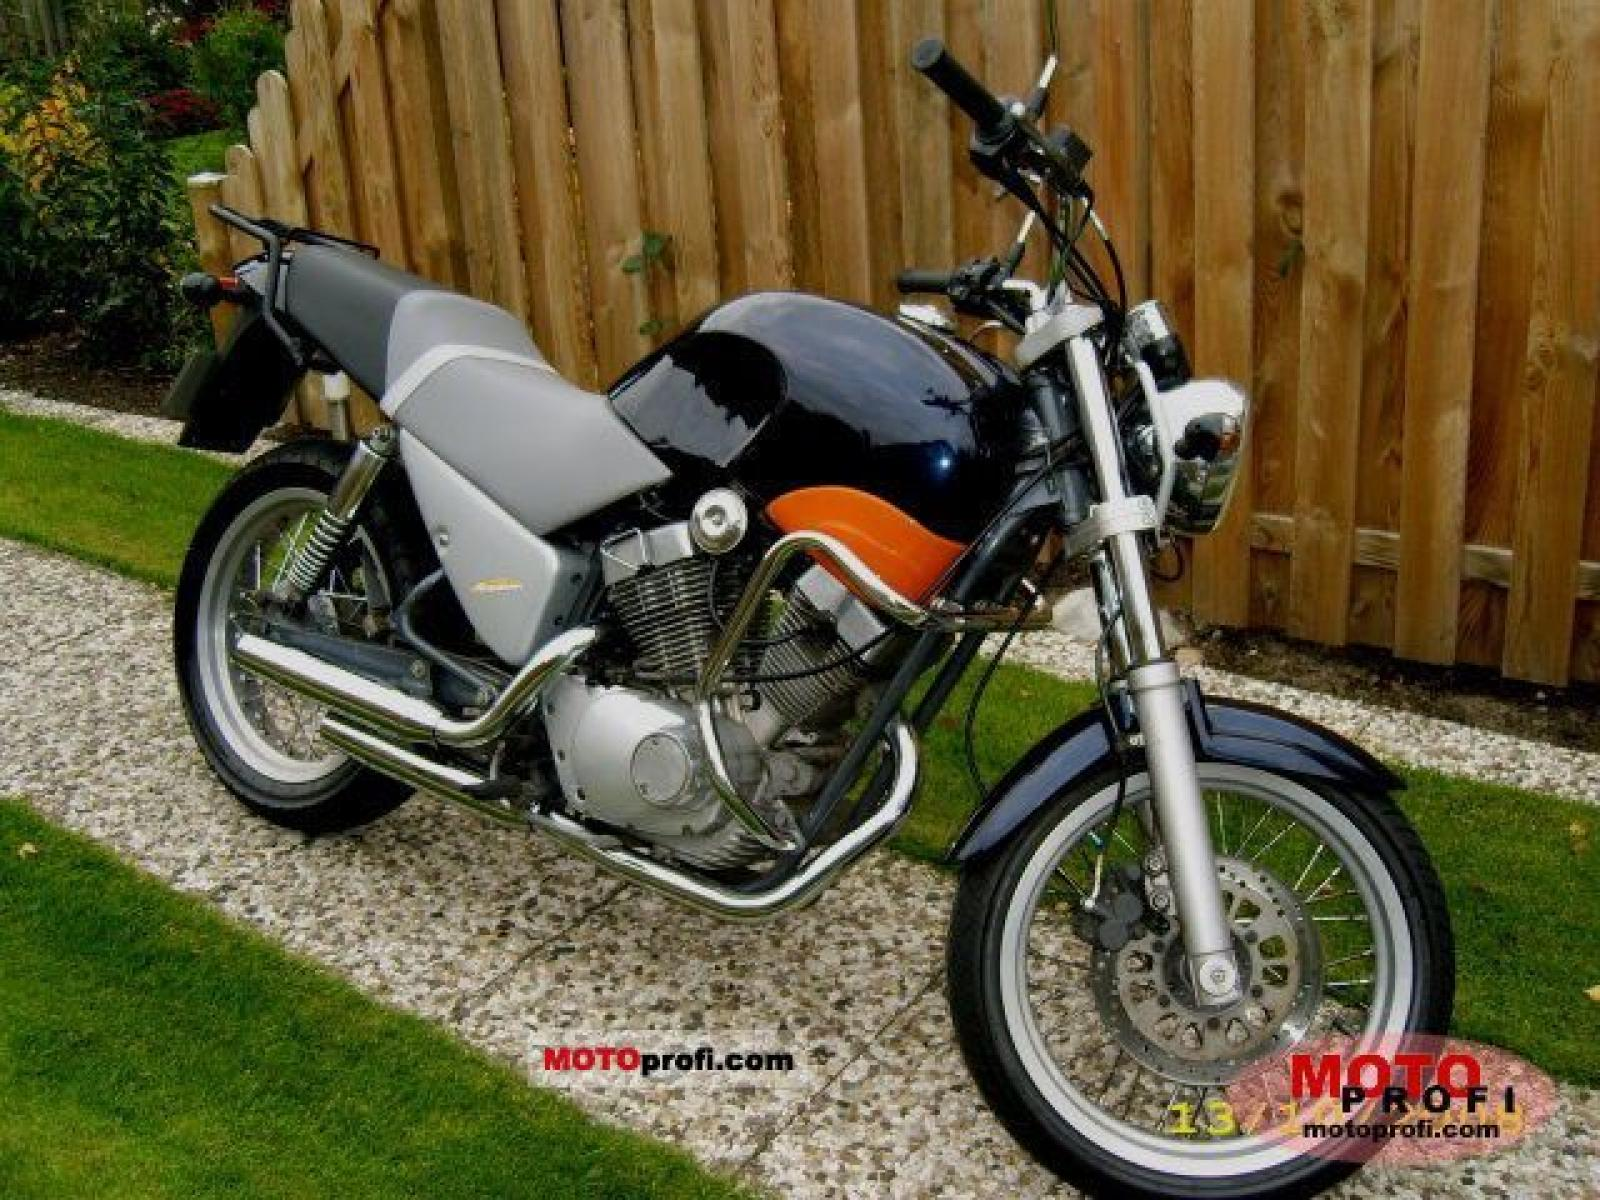 Sachs Roadster 800 2004 images #124604